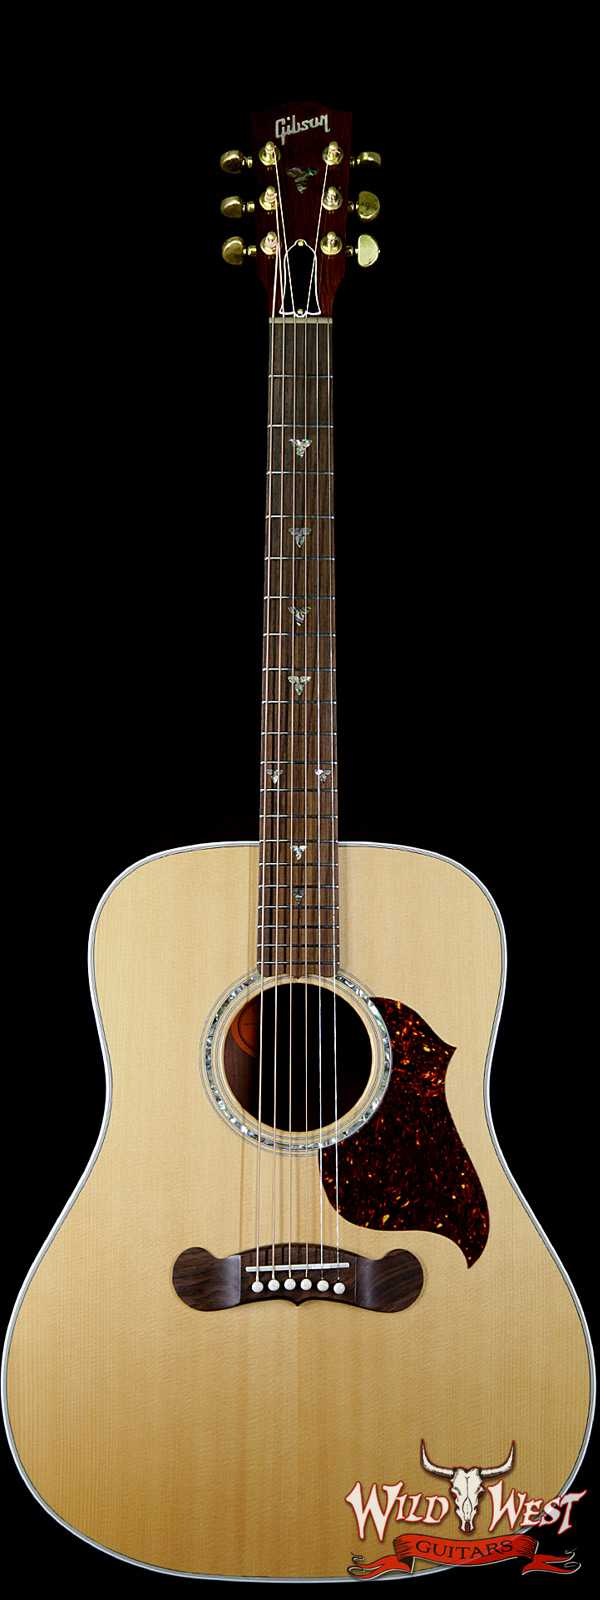 1997 Gibson Montana CL-30 Deluxe Flat Top Fully Carved Archback Acoustic Guitar